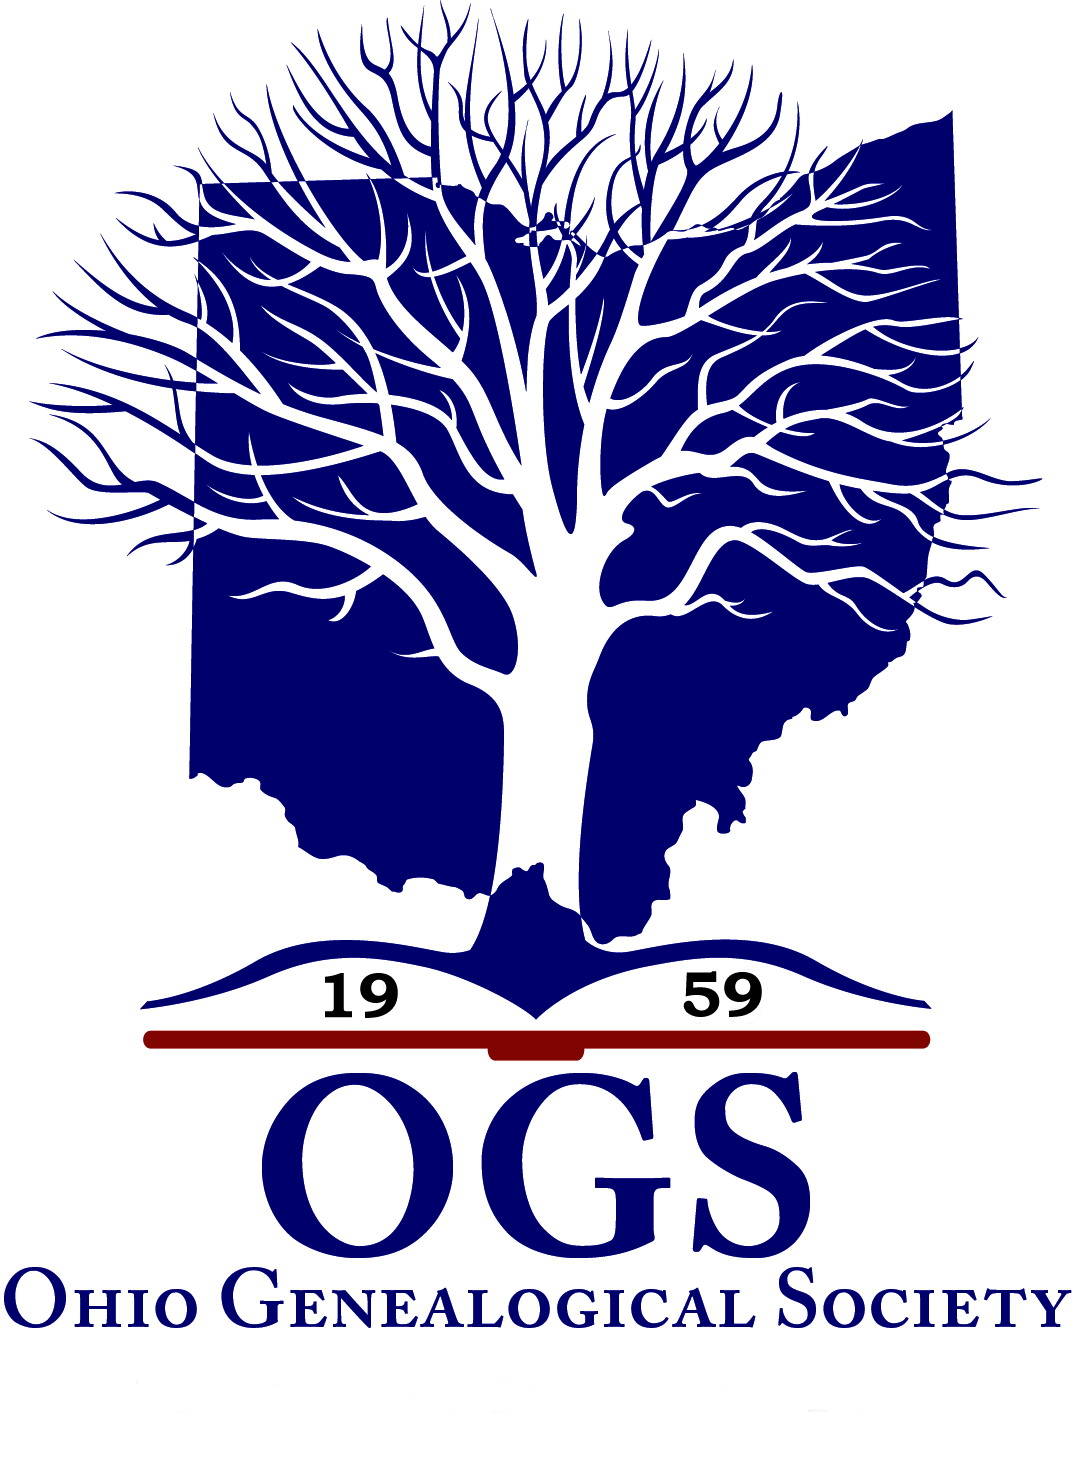 Ohio Genealogical Society home page